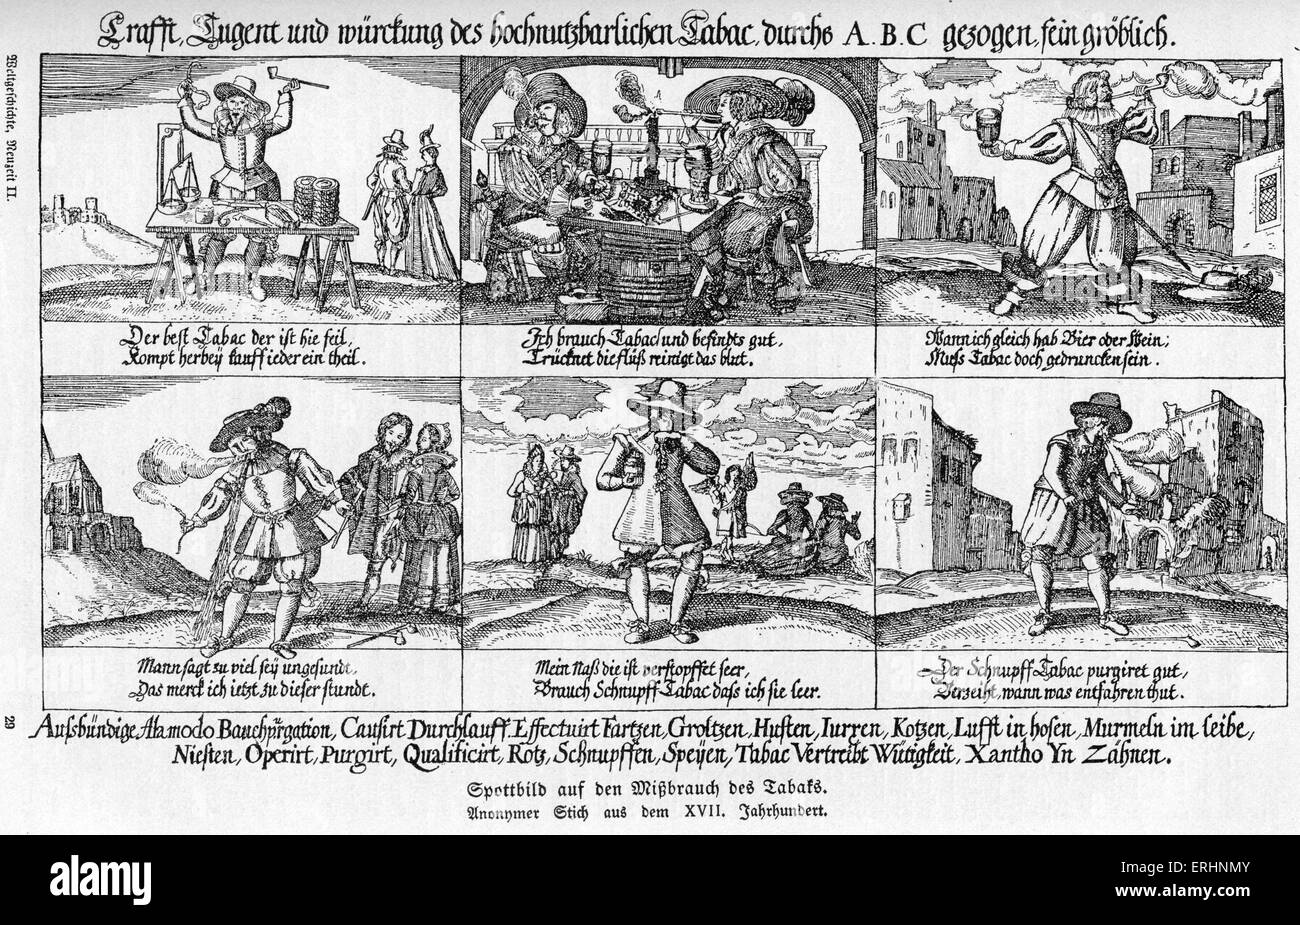 The abuse of tobacco in the 17th century - side effects of tobacco listed alphabetically at the bottom of the caricature. - Stock Image